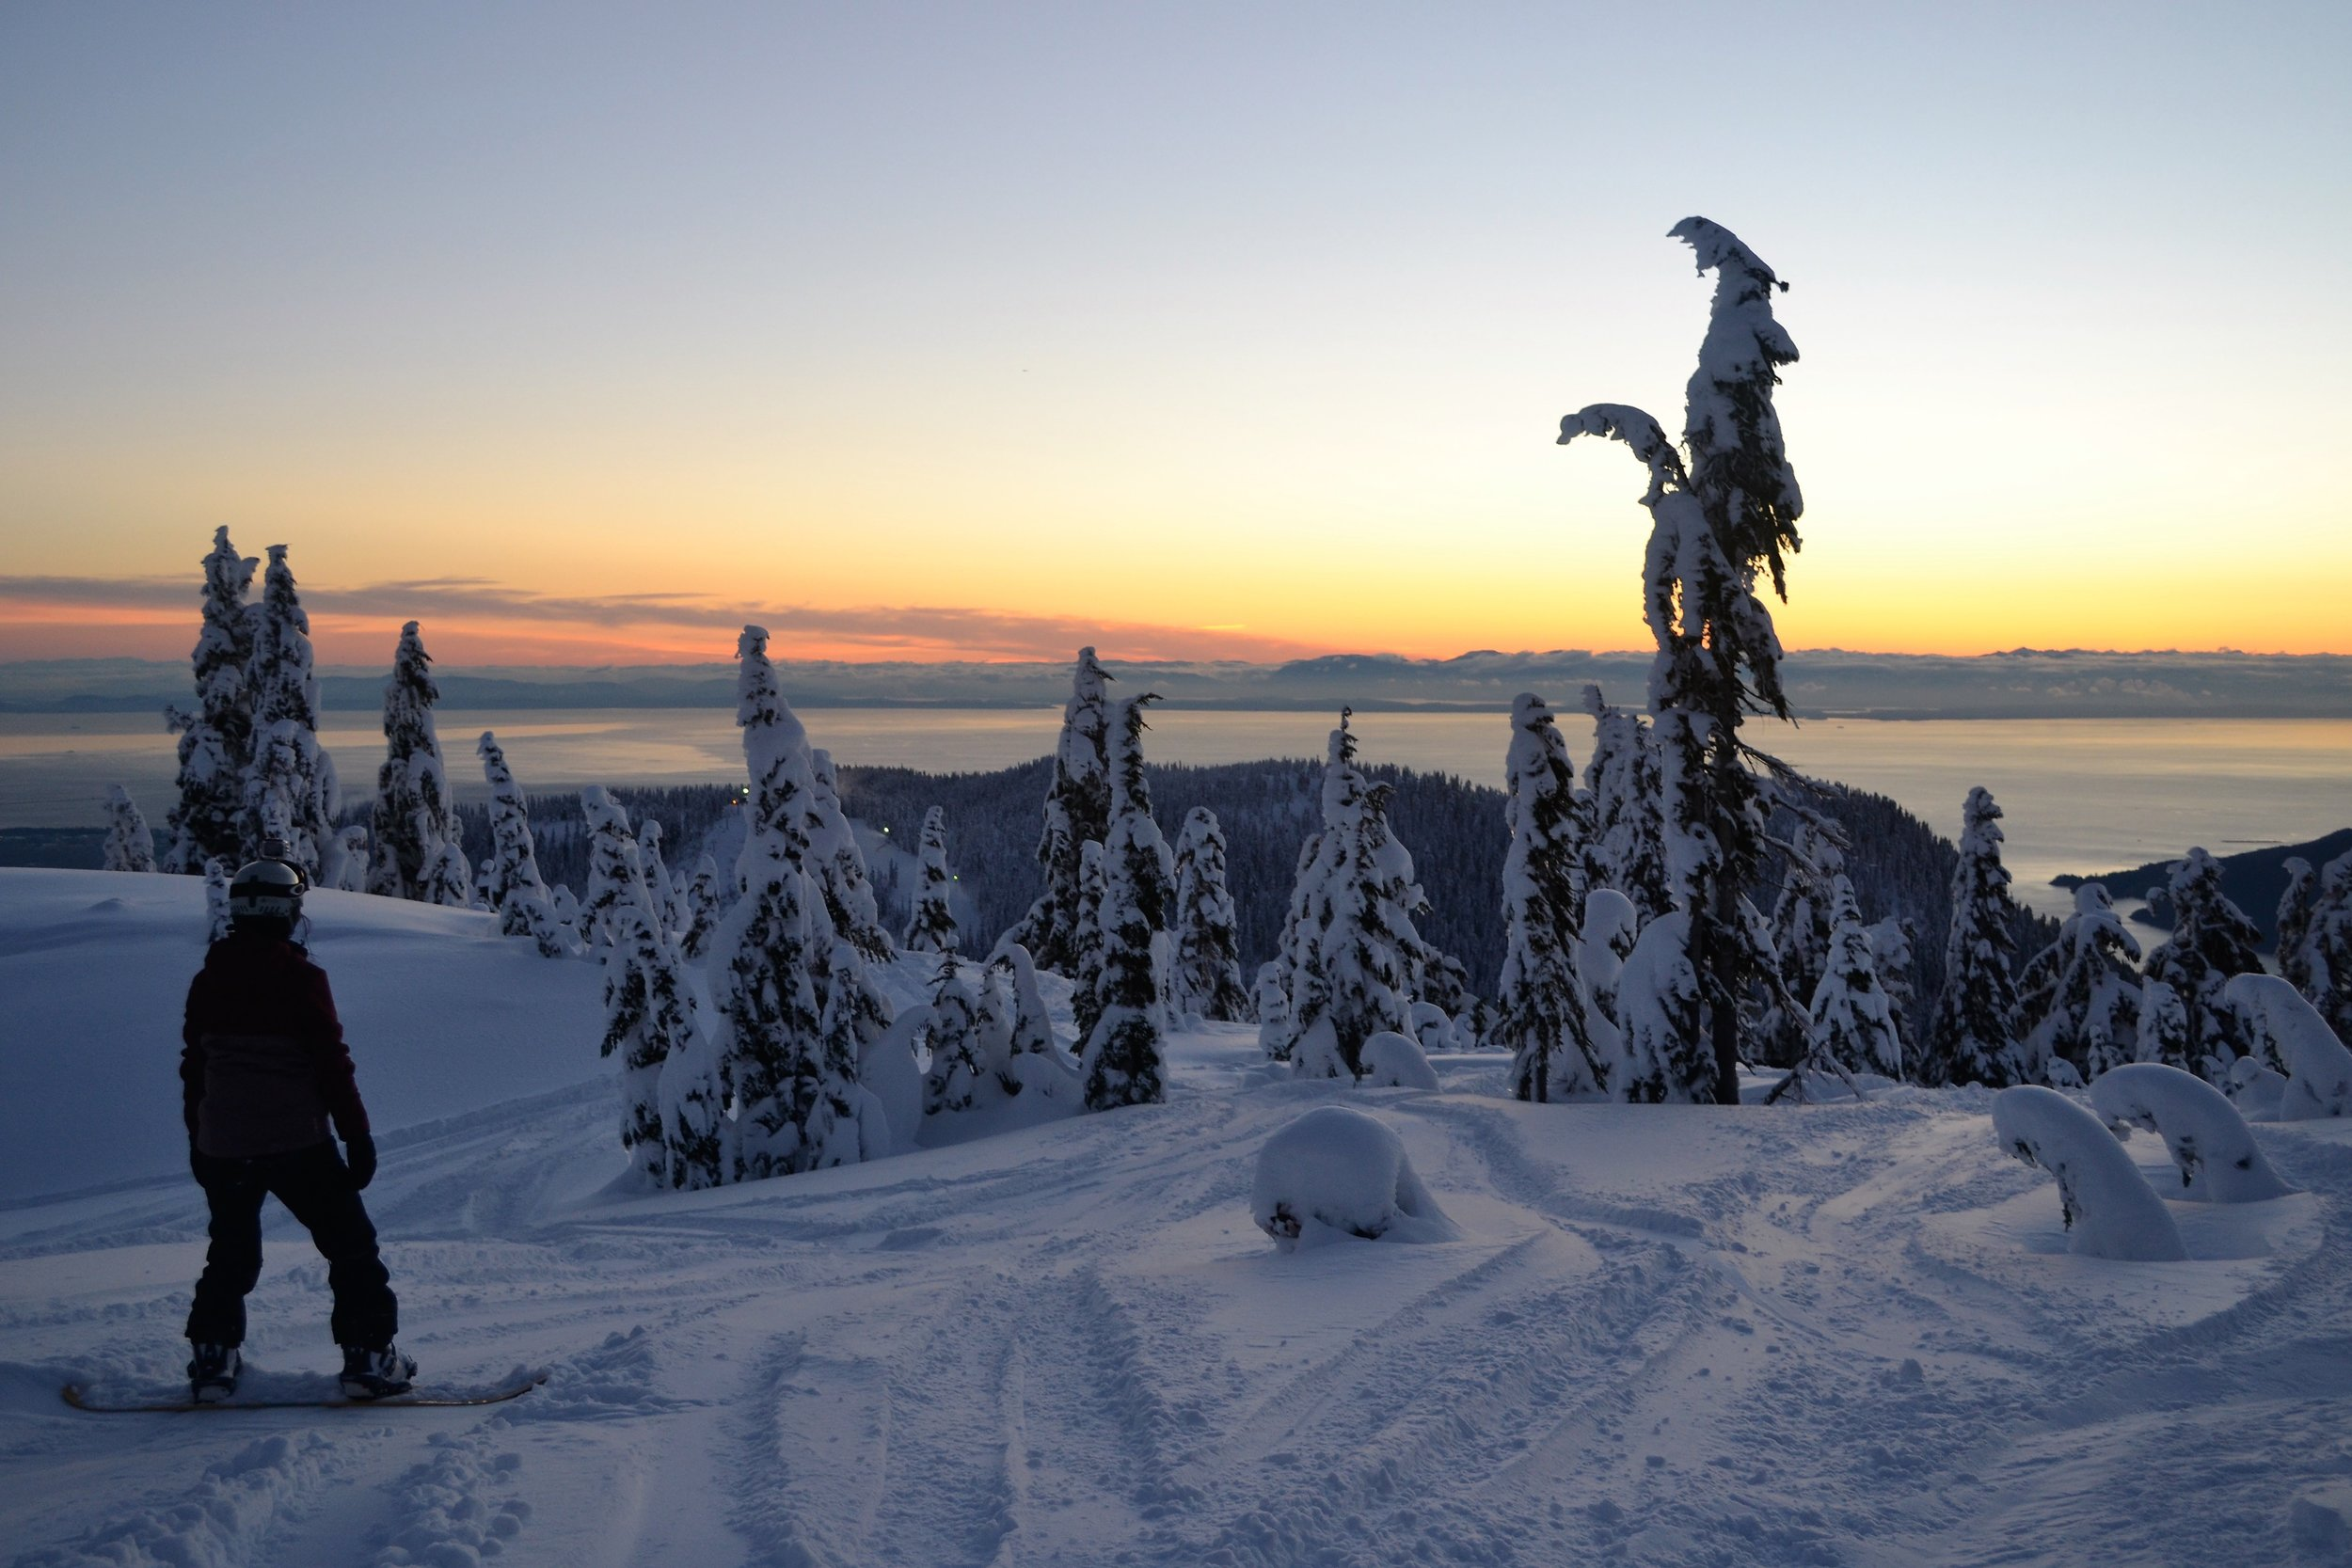 Snowboarder overlooking the ocean in Vancouver during sunset